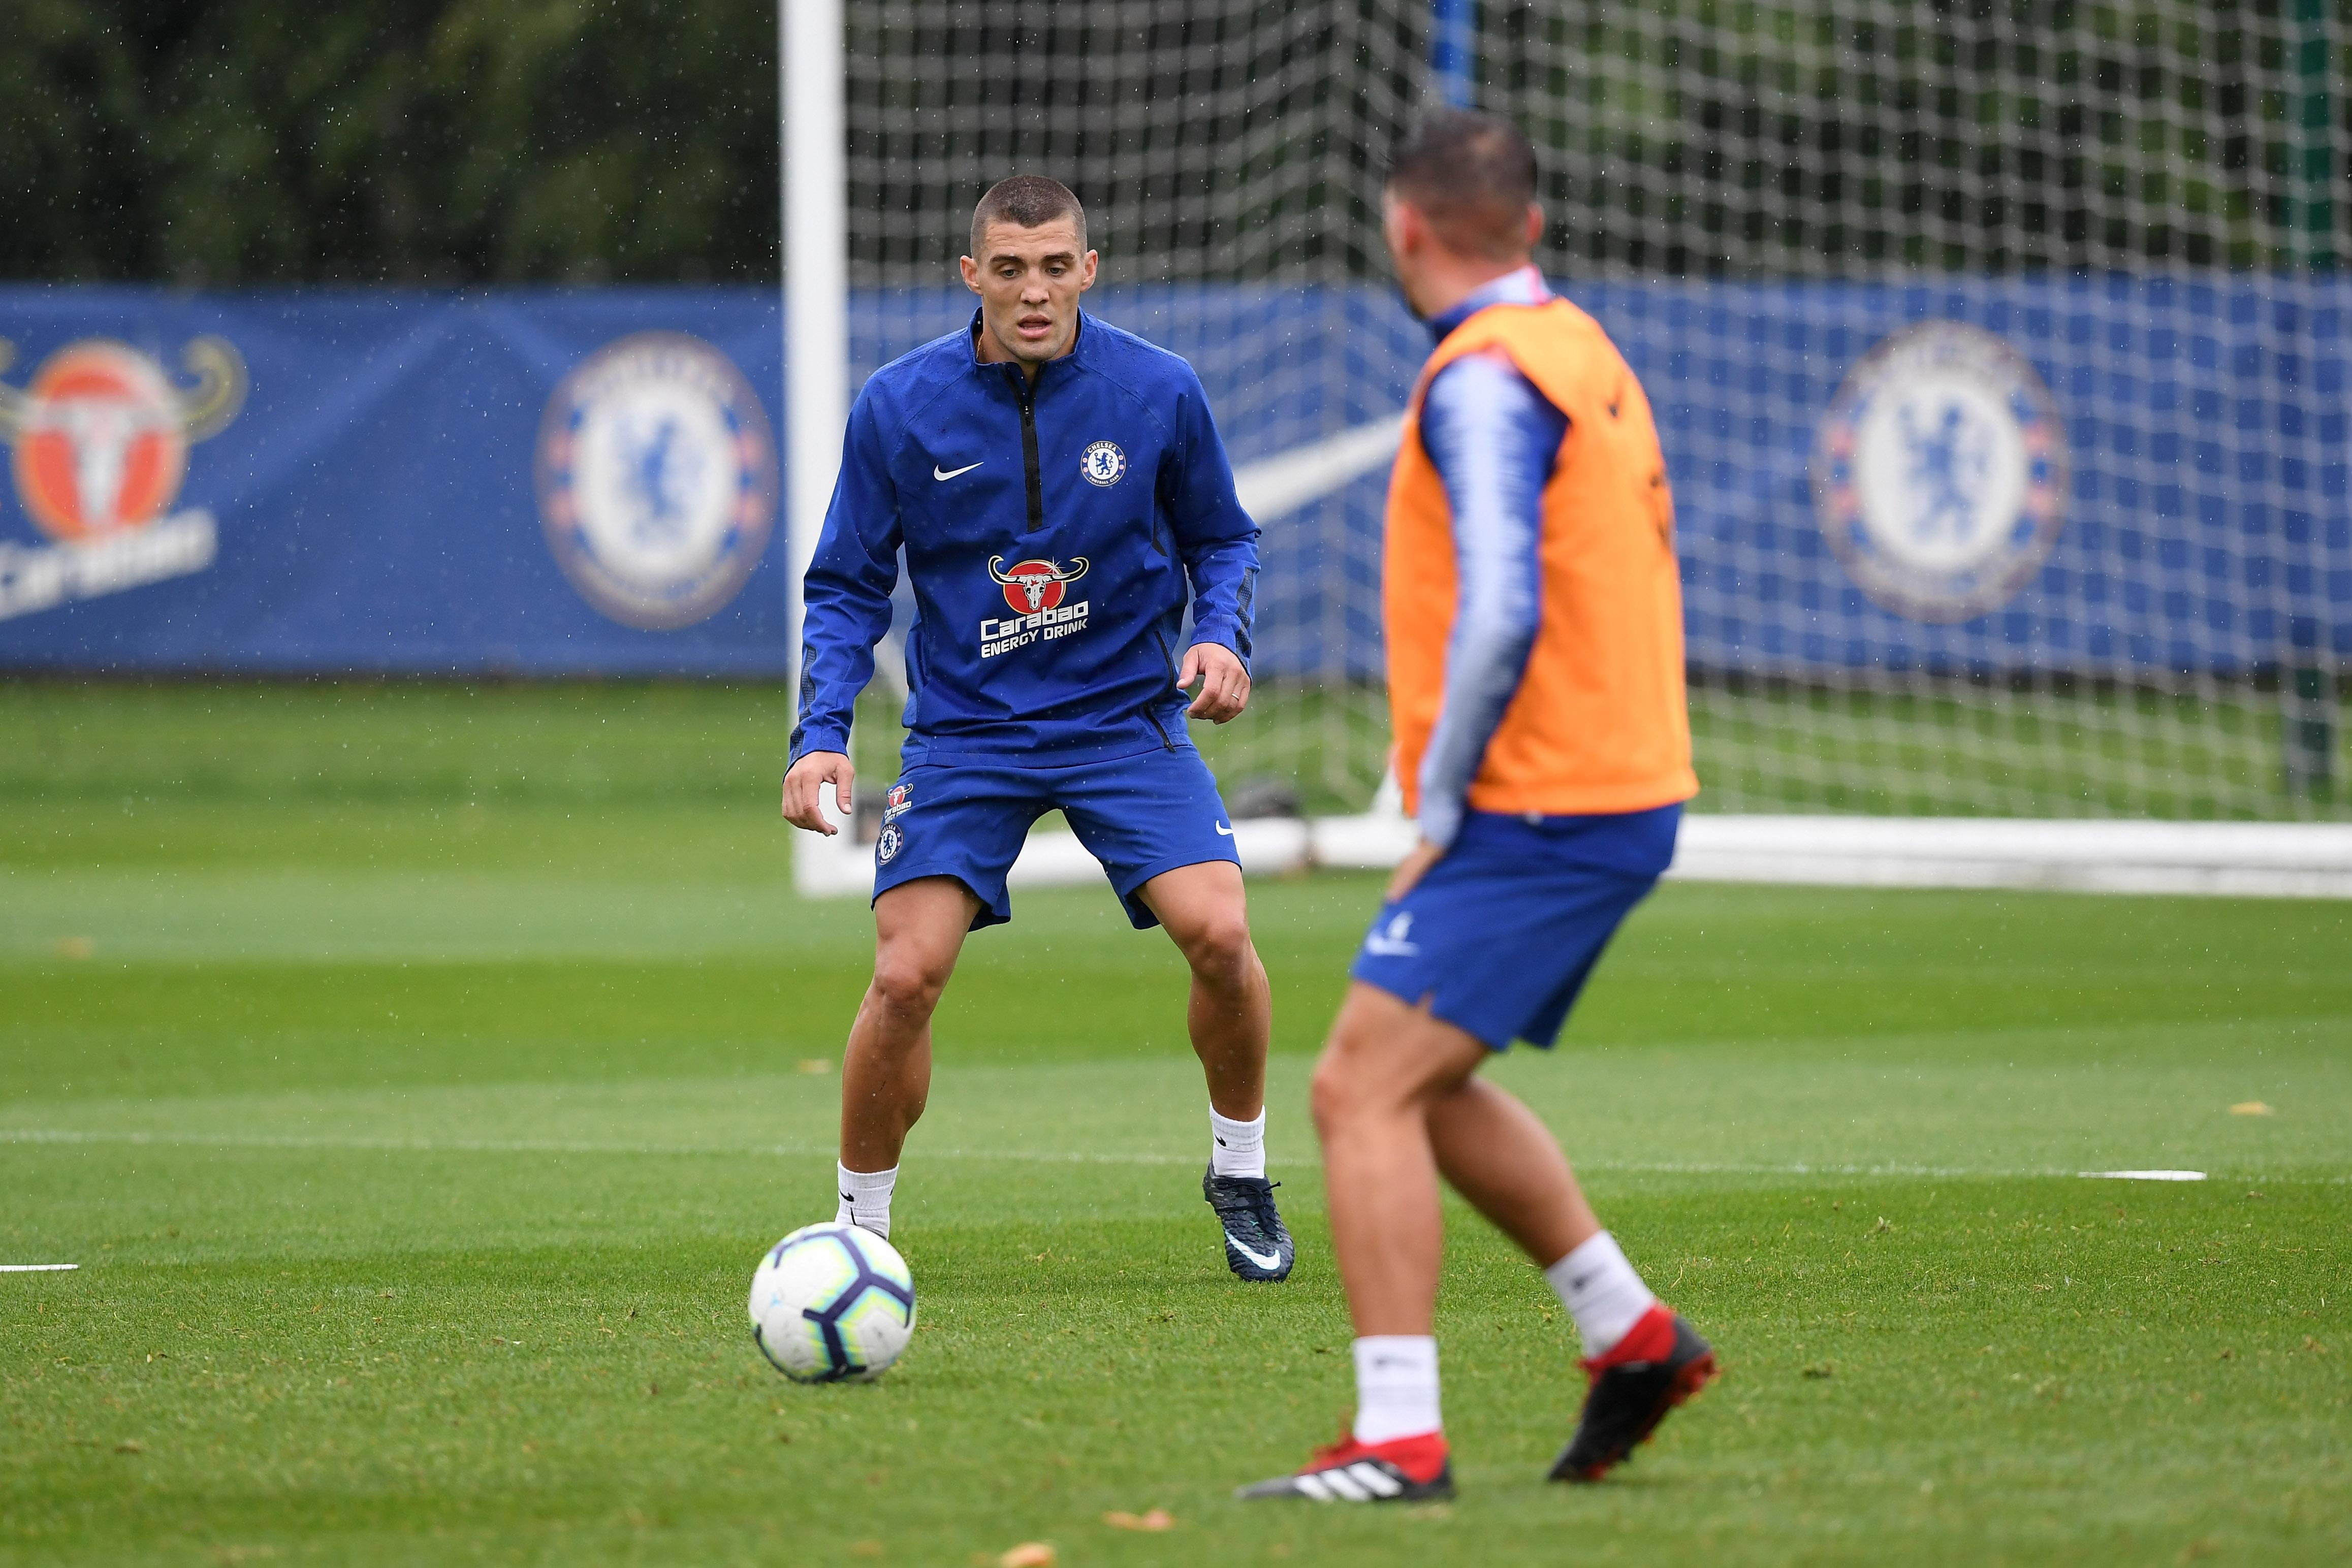 Fellow Chelsea new boy Mateo Kovacic, who joined on loan from Real Madrid, also took part in training